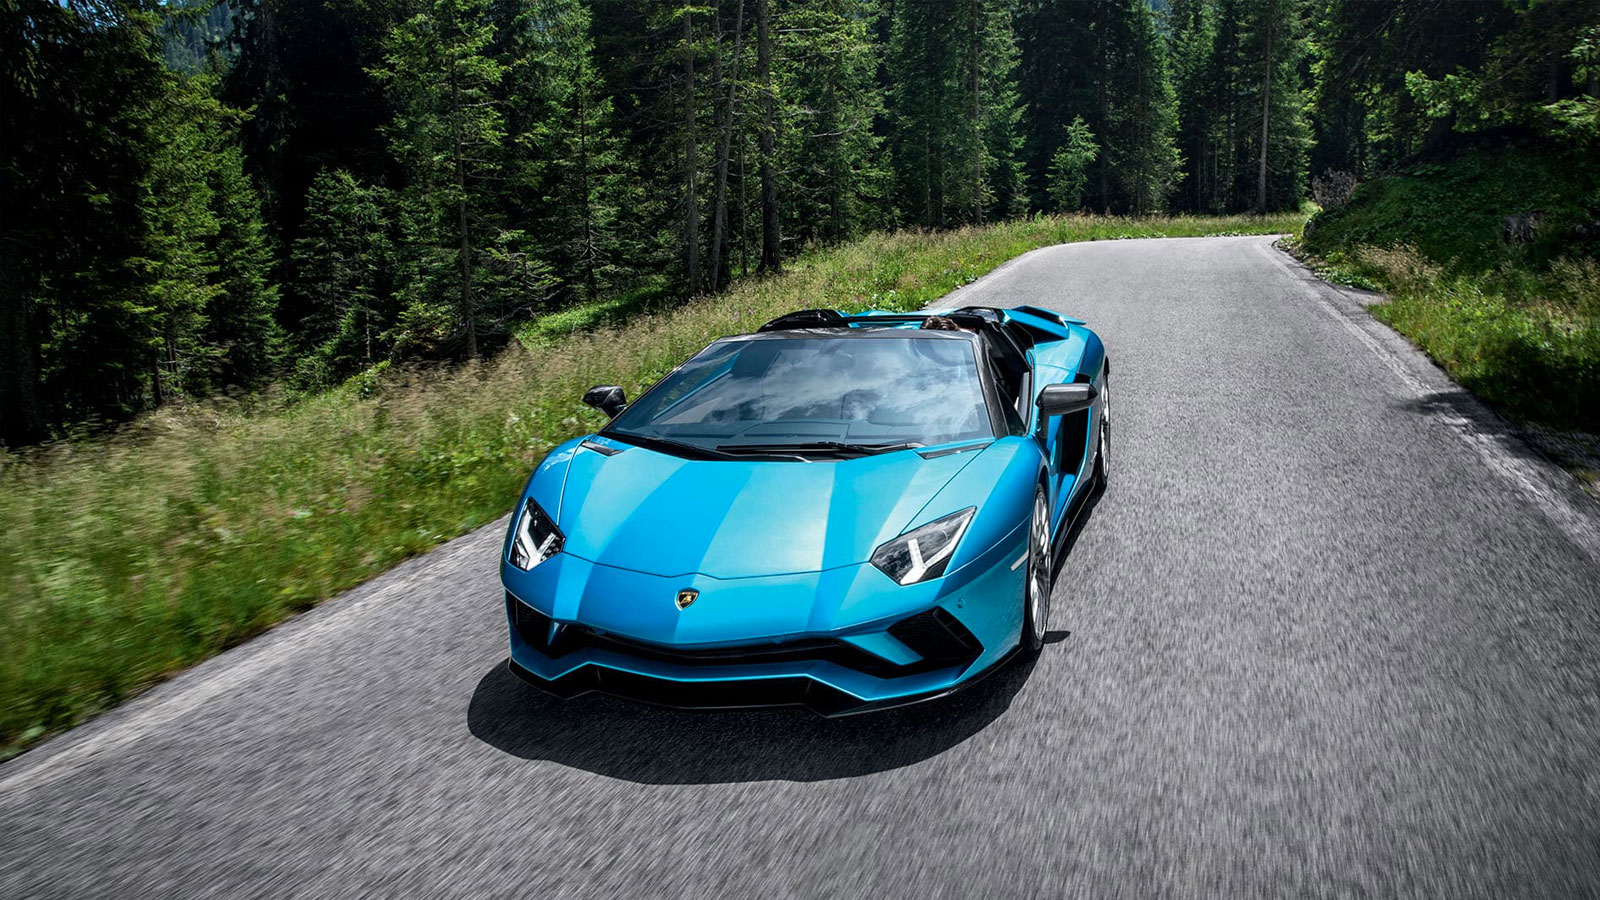 Lamborghini Aventador S Roadster - The Open Top Icon image 10